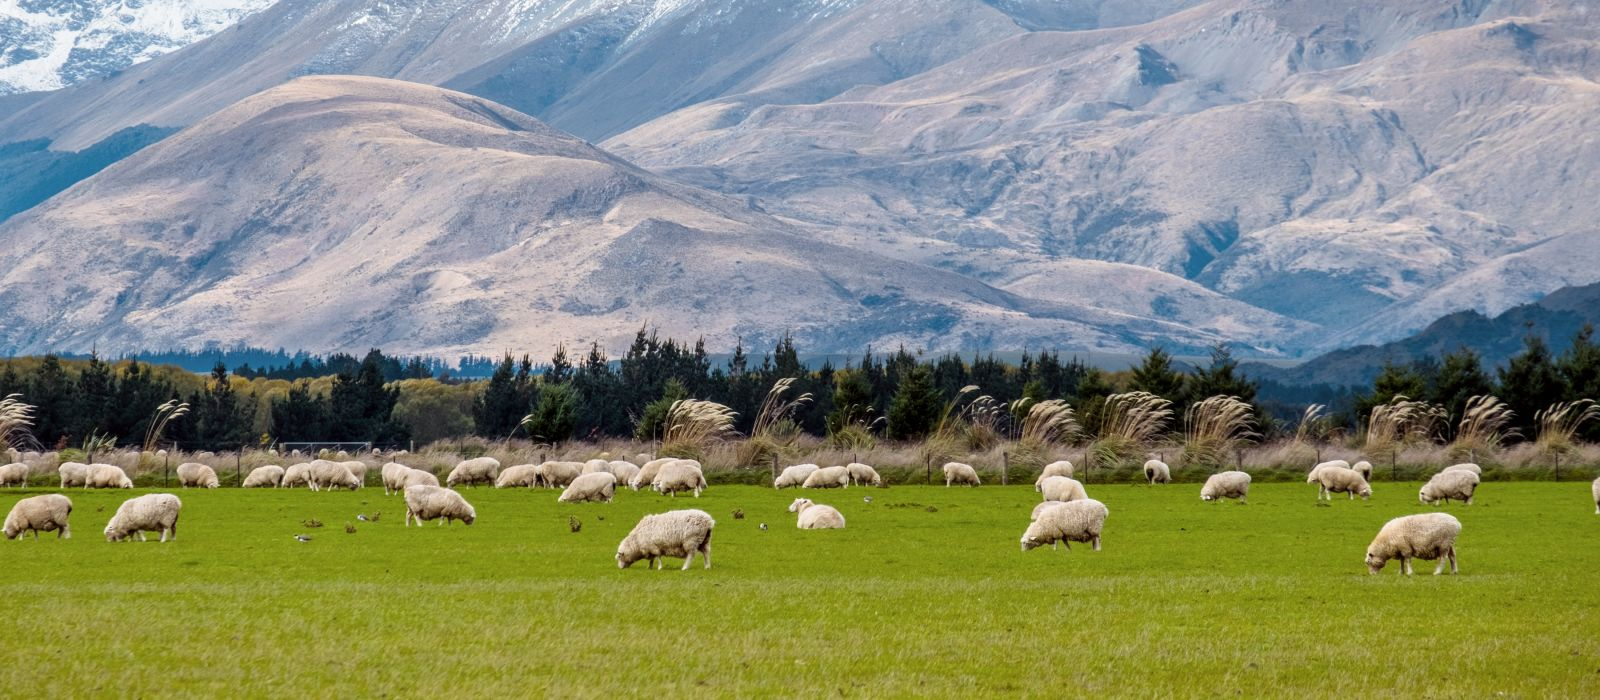 A stunning landscape scene of the agriculture in a rural area in New Zealand